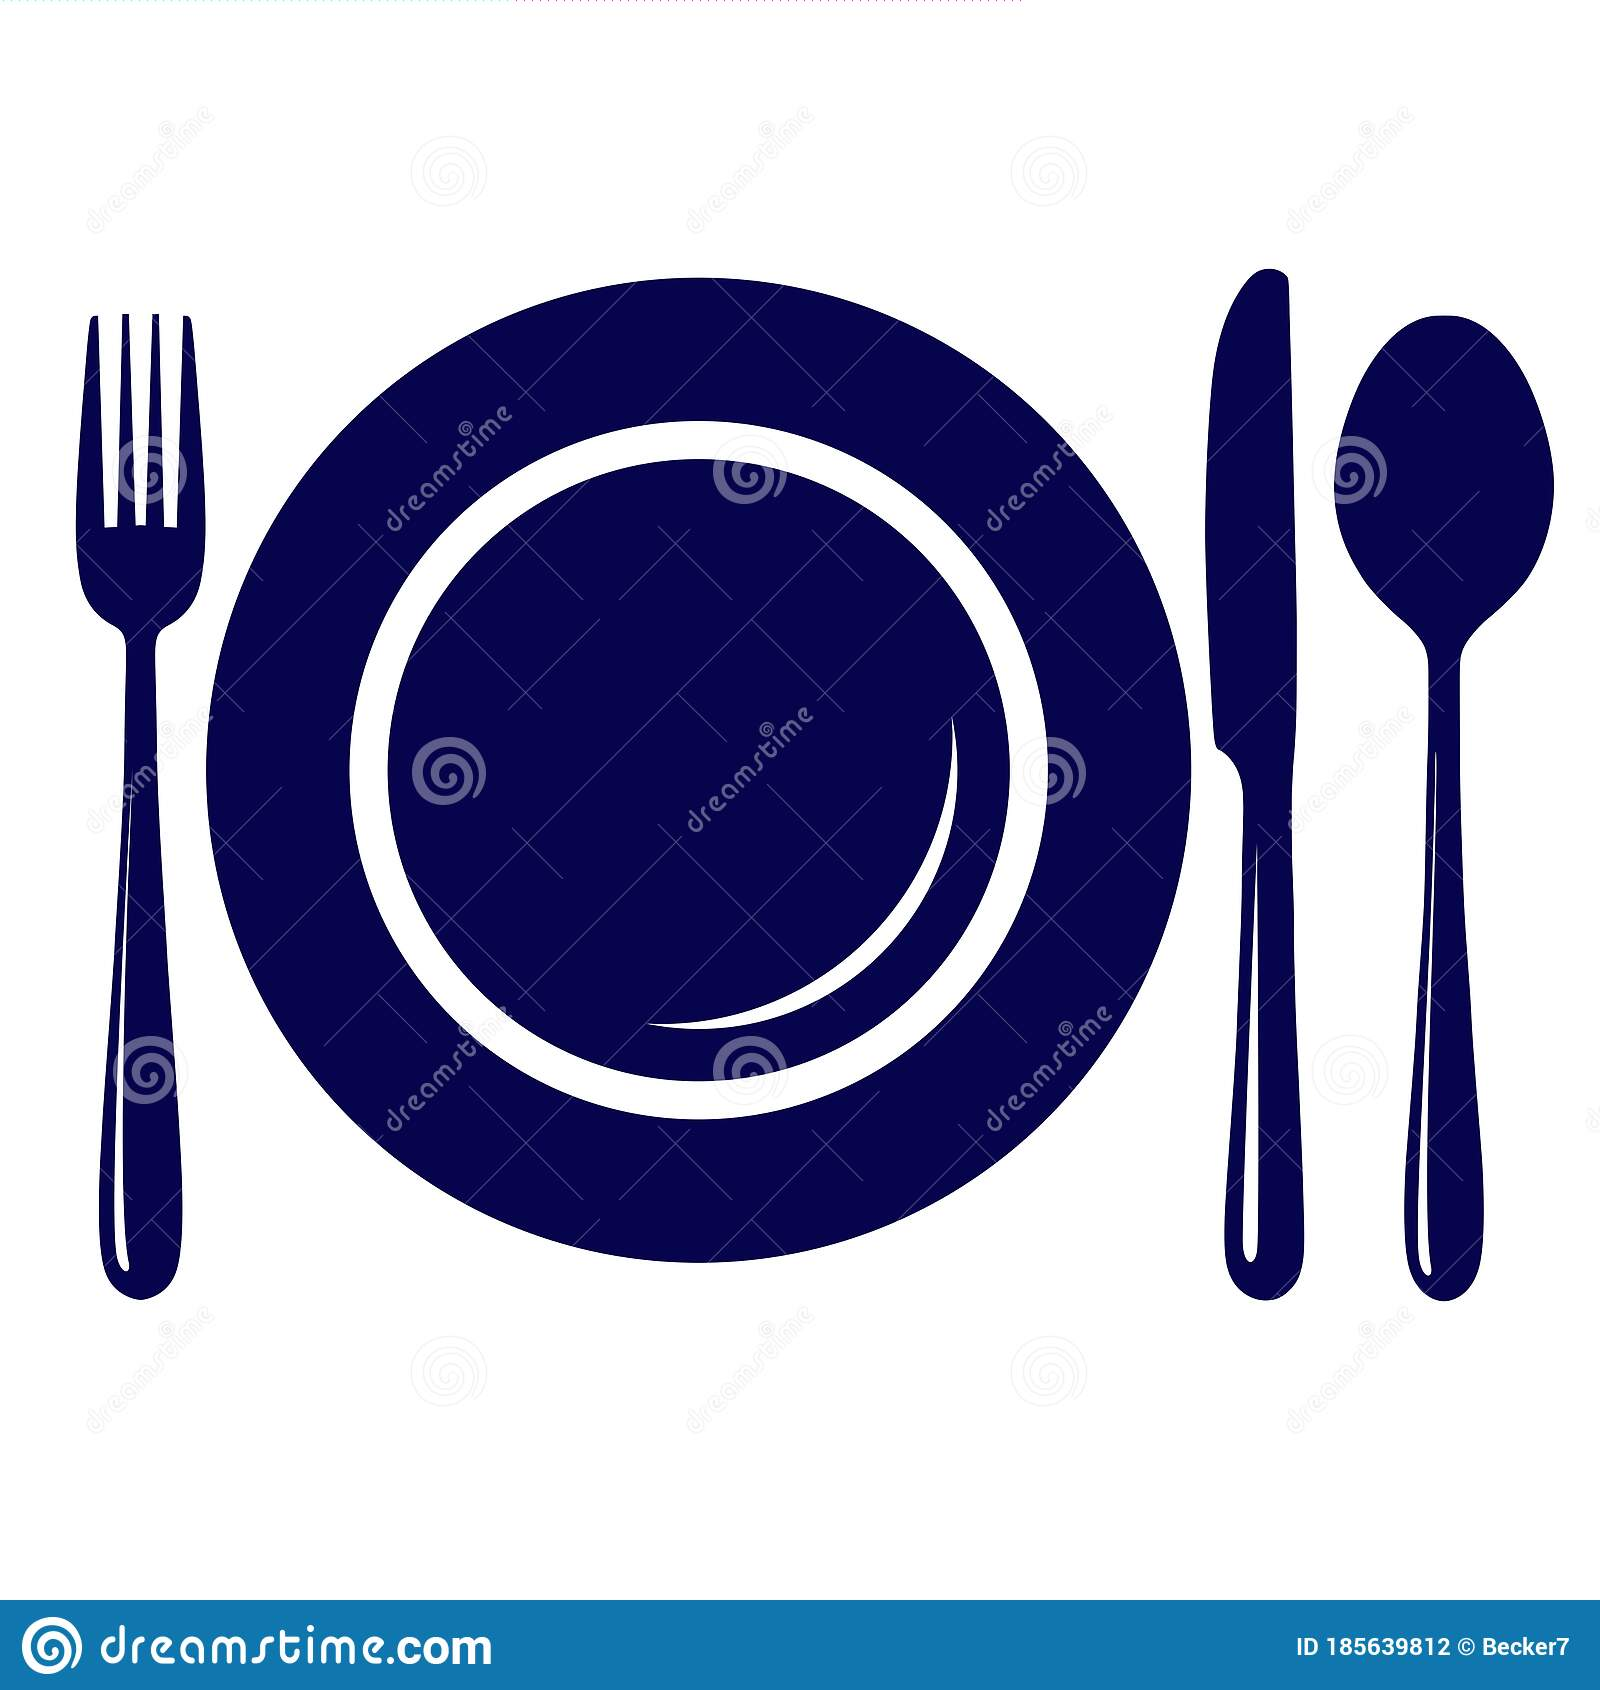 empty plate with knife fork and spoon icon symbol sign isolated on white background stock vector illustration of dinner design 185639812 empty plate with knife fork and spoon icon symbol sign isolated on white background stock vector illustration of dinner design 185639812